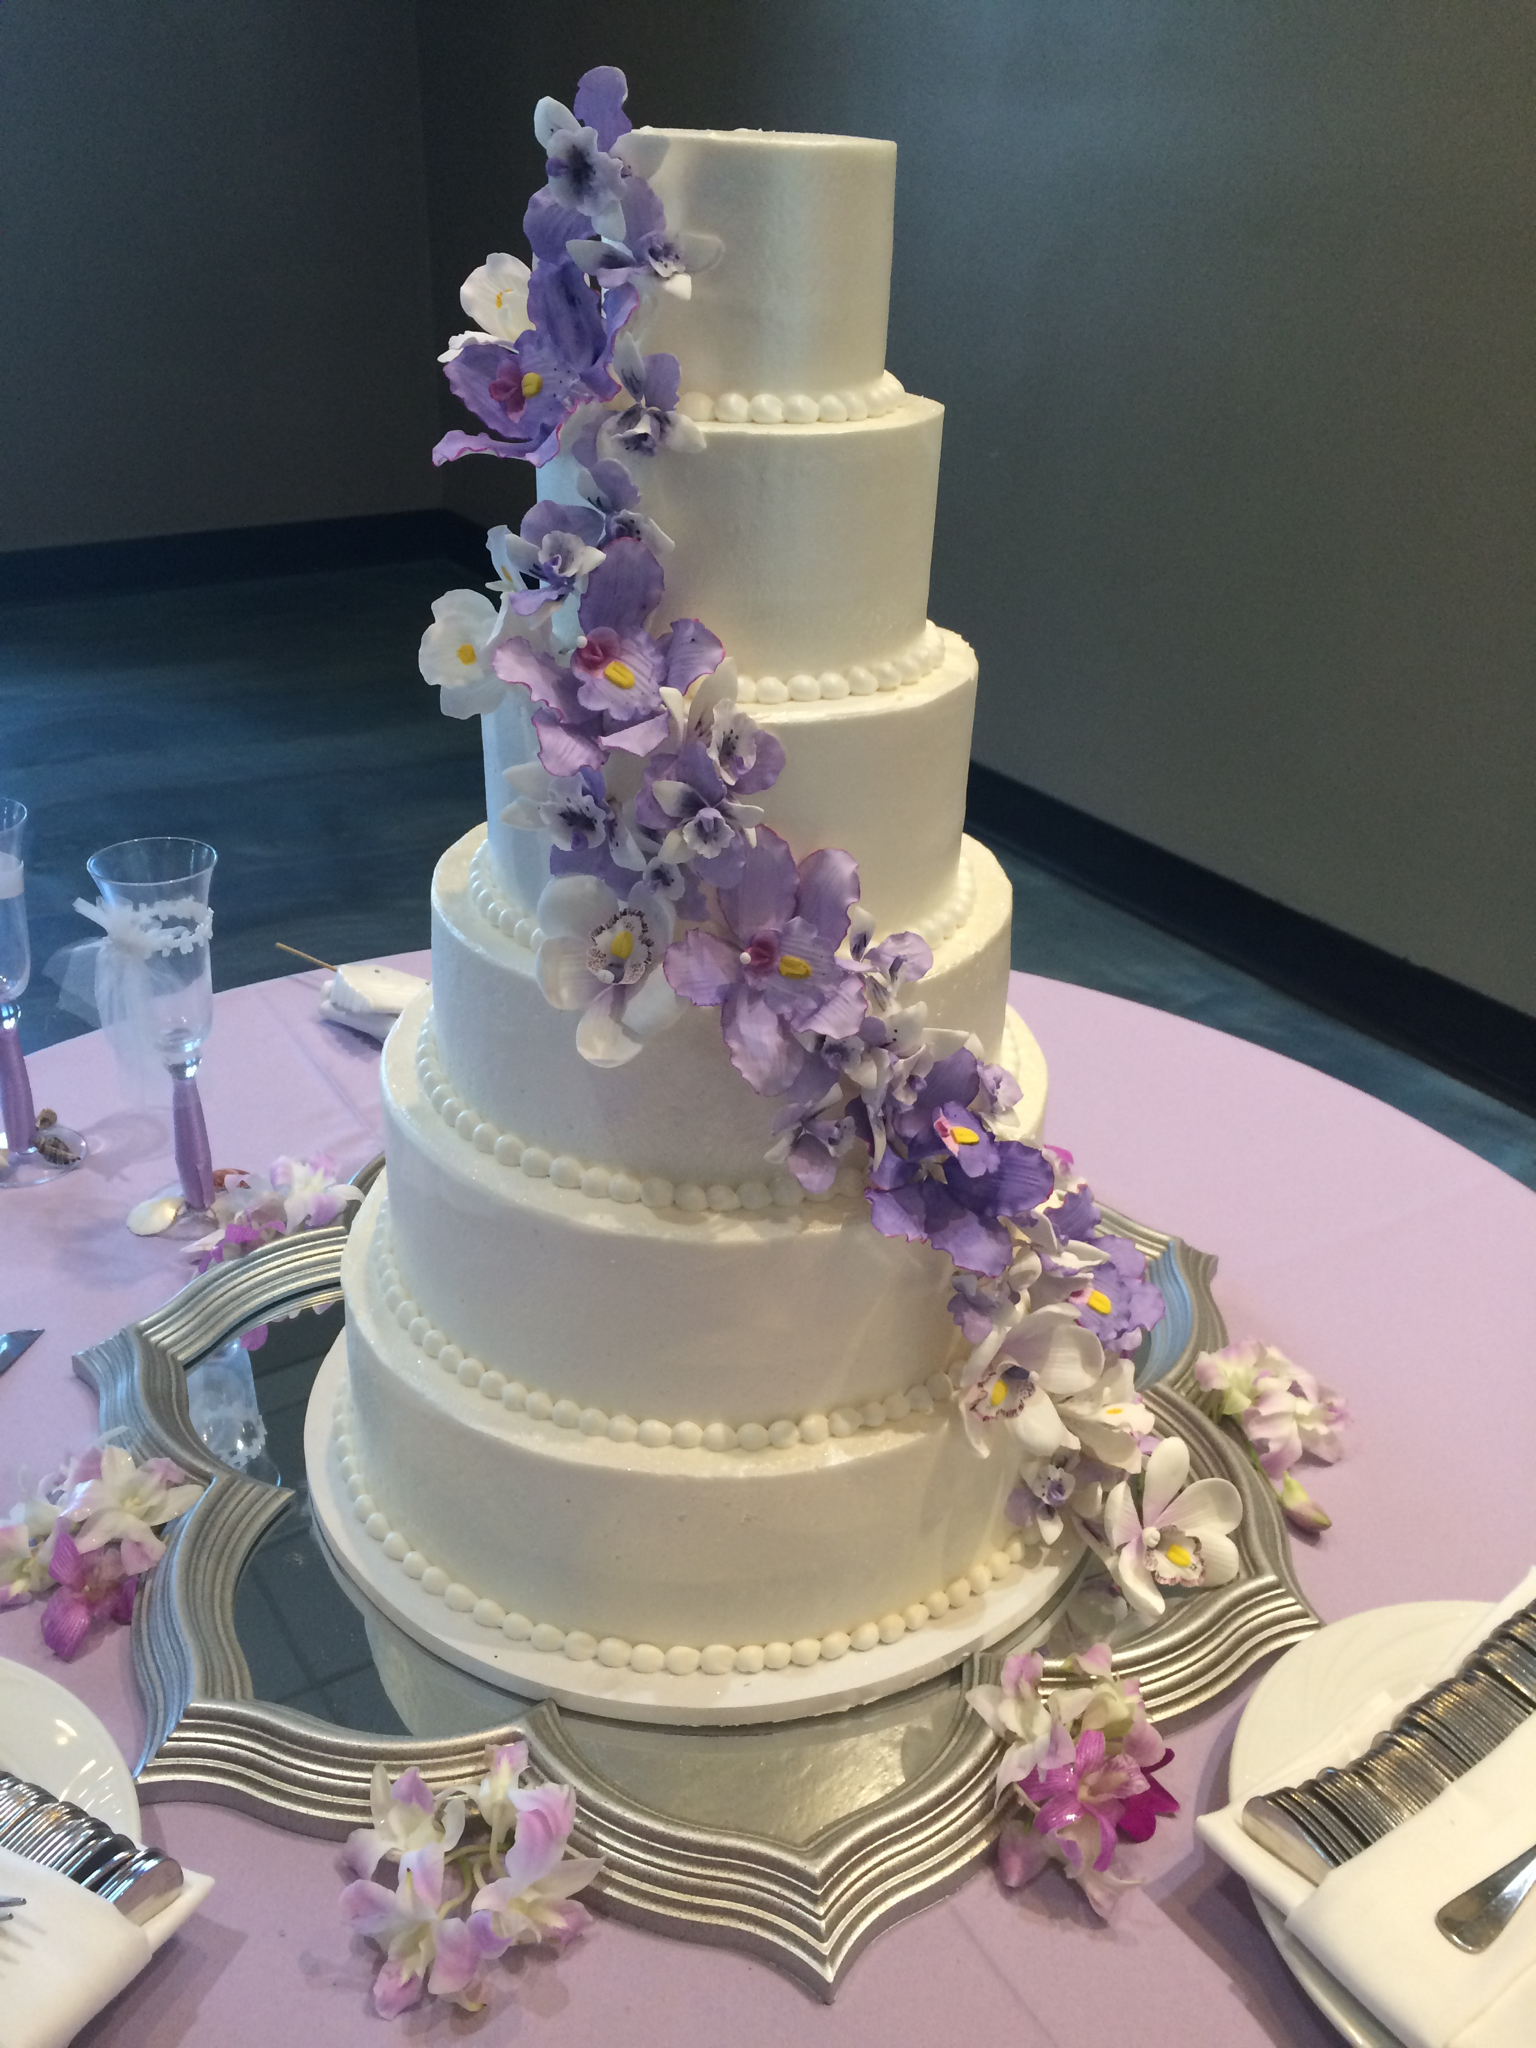 lilac     Ms  Laura s Cakes romantic wedding cake  Buttercream wedding cake  Pretty Wedding cake  Lilac wedding  cake  Pearl wedding cake  Oklahoma Aquarium  Orchid wedding flowers